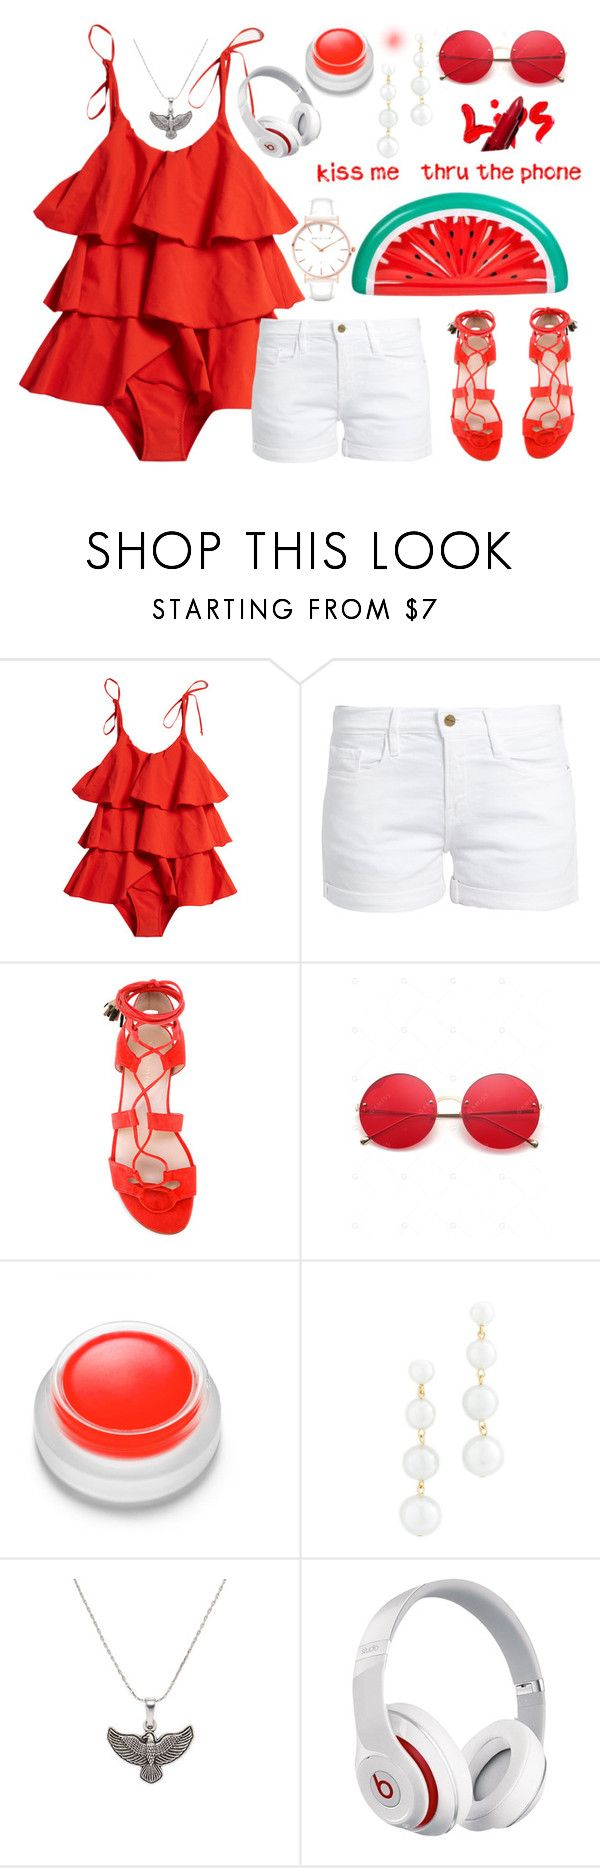 """""""《Kiss me thru the phone 》"""" by apcquintela ❤ liked on Polyvore featuring Lisa Marie Fernandez, Frame, Stuart Weitzman, rms beauty, Rebecca Minkoff, Alex and Ani, Beats by Dr. Dre and Abbott Lyon"""